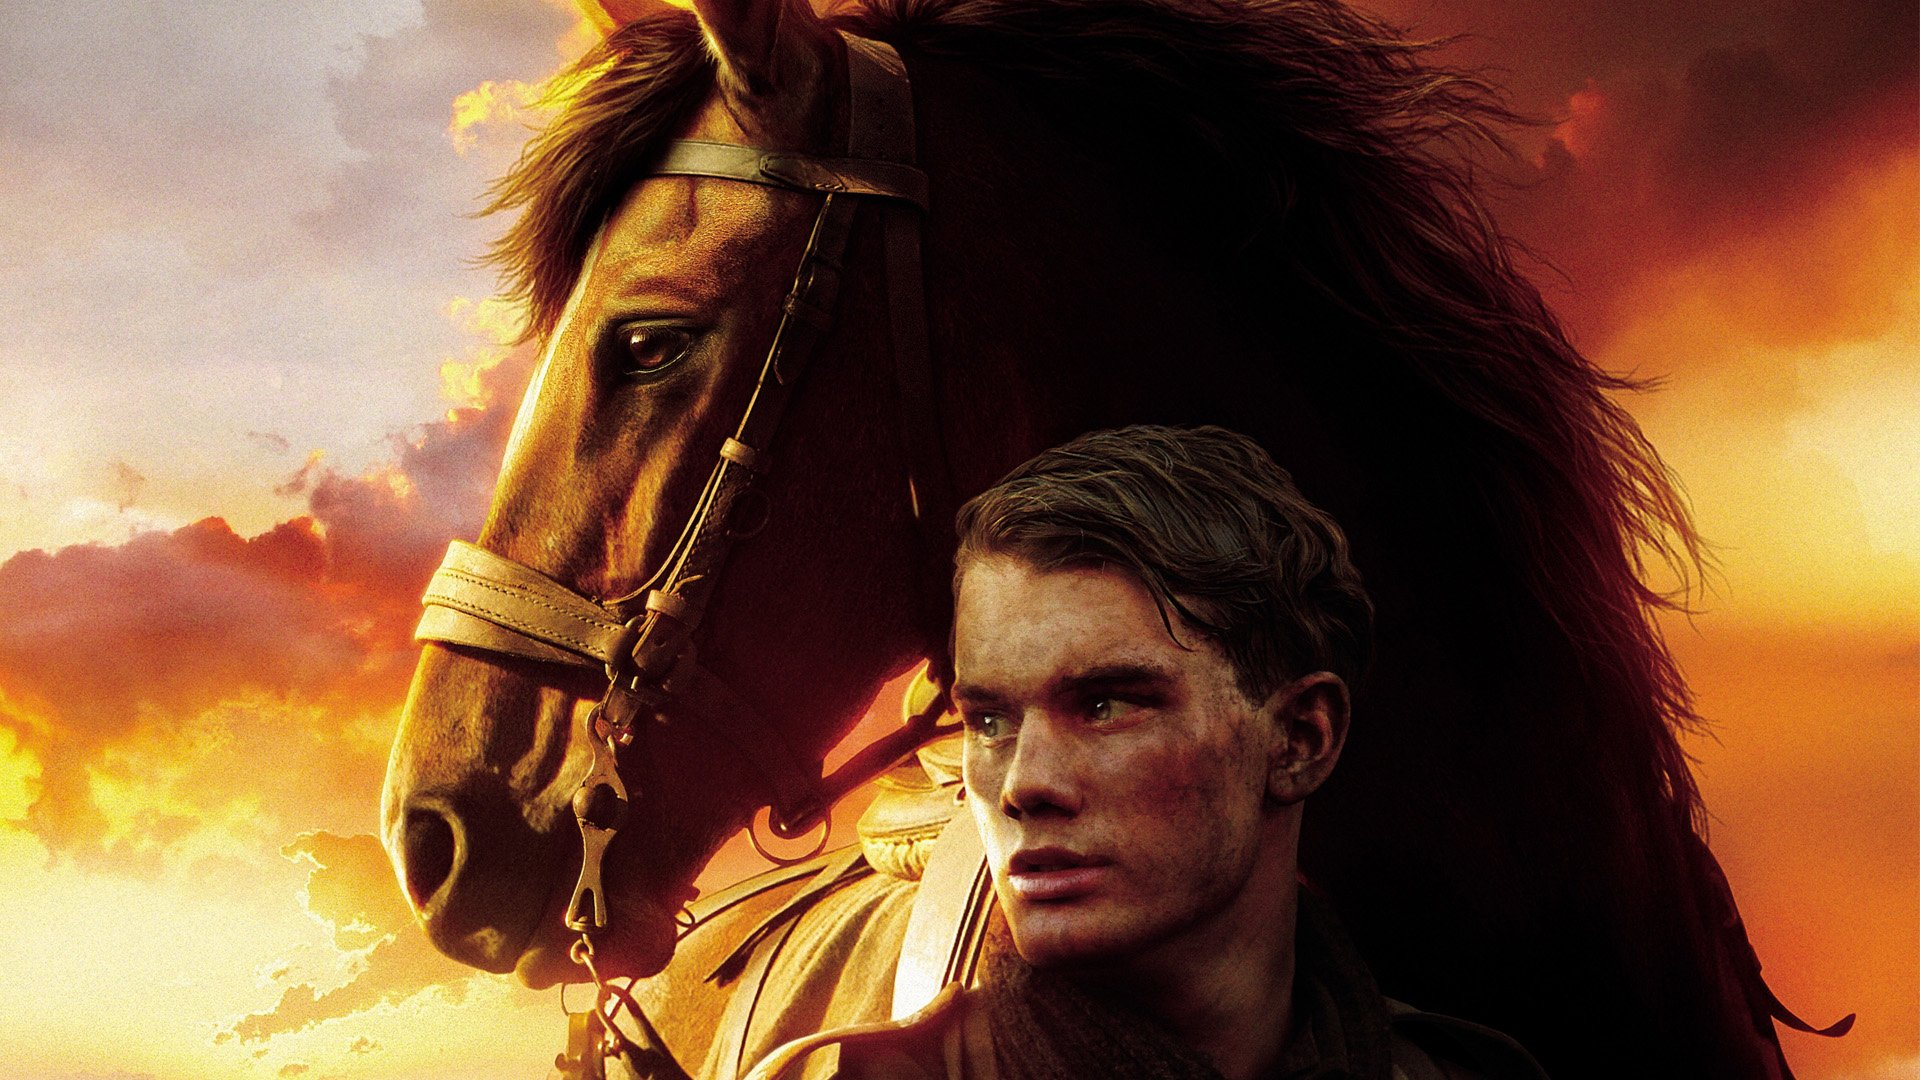 War Horse Hd Wallpaper Background Image 1920x1080 Id 827949 Wallpaper Abyss